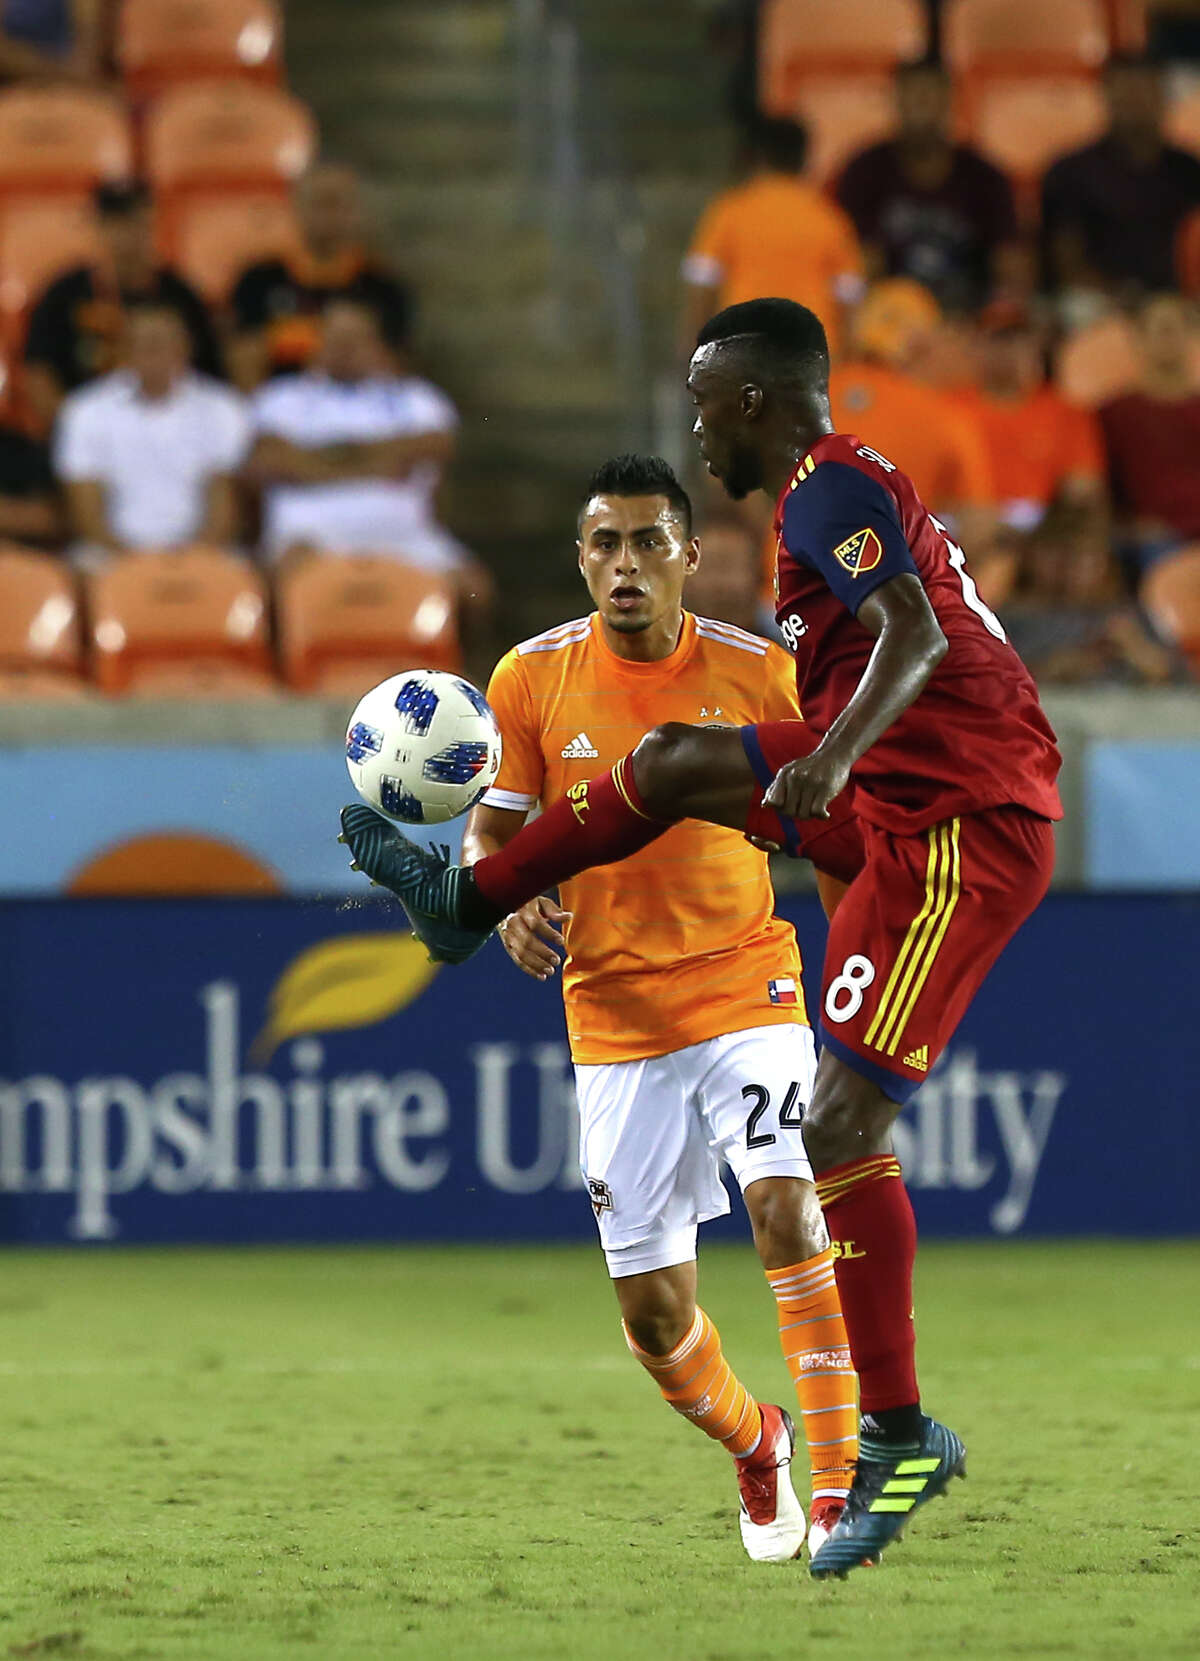 Real Salt Lake midfielder Stephen Sunny Sunday (8) gains possession of the ball during the first half of an MLS match against the Houston Dynamo at BBVA Compass Stadium Saturday, Aug. 18, 2018, in Houston.